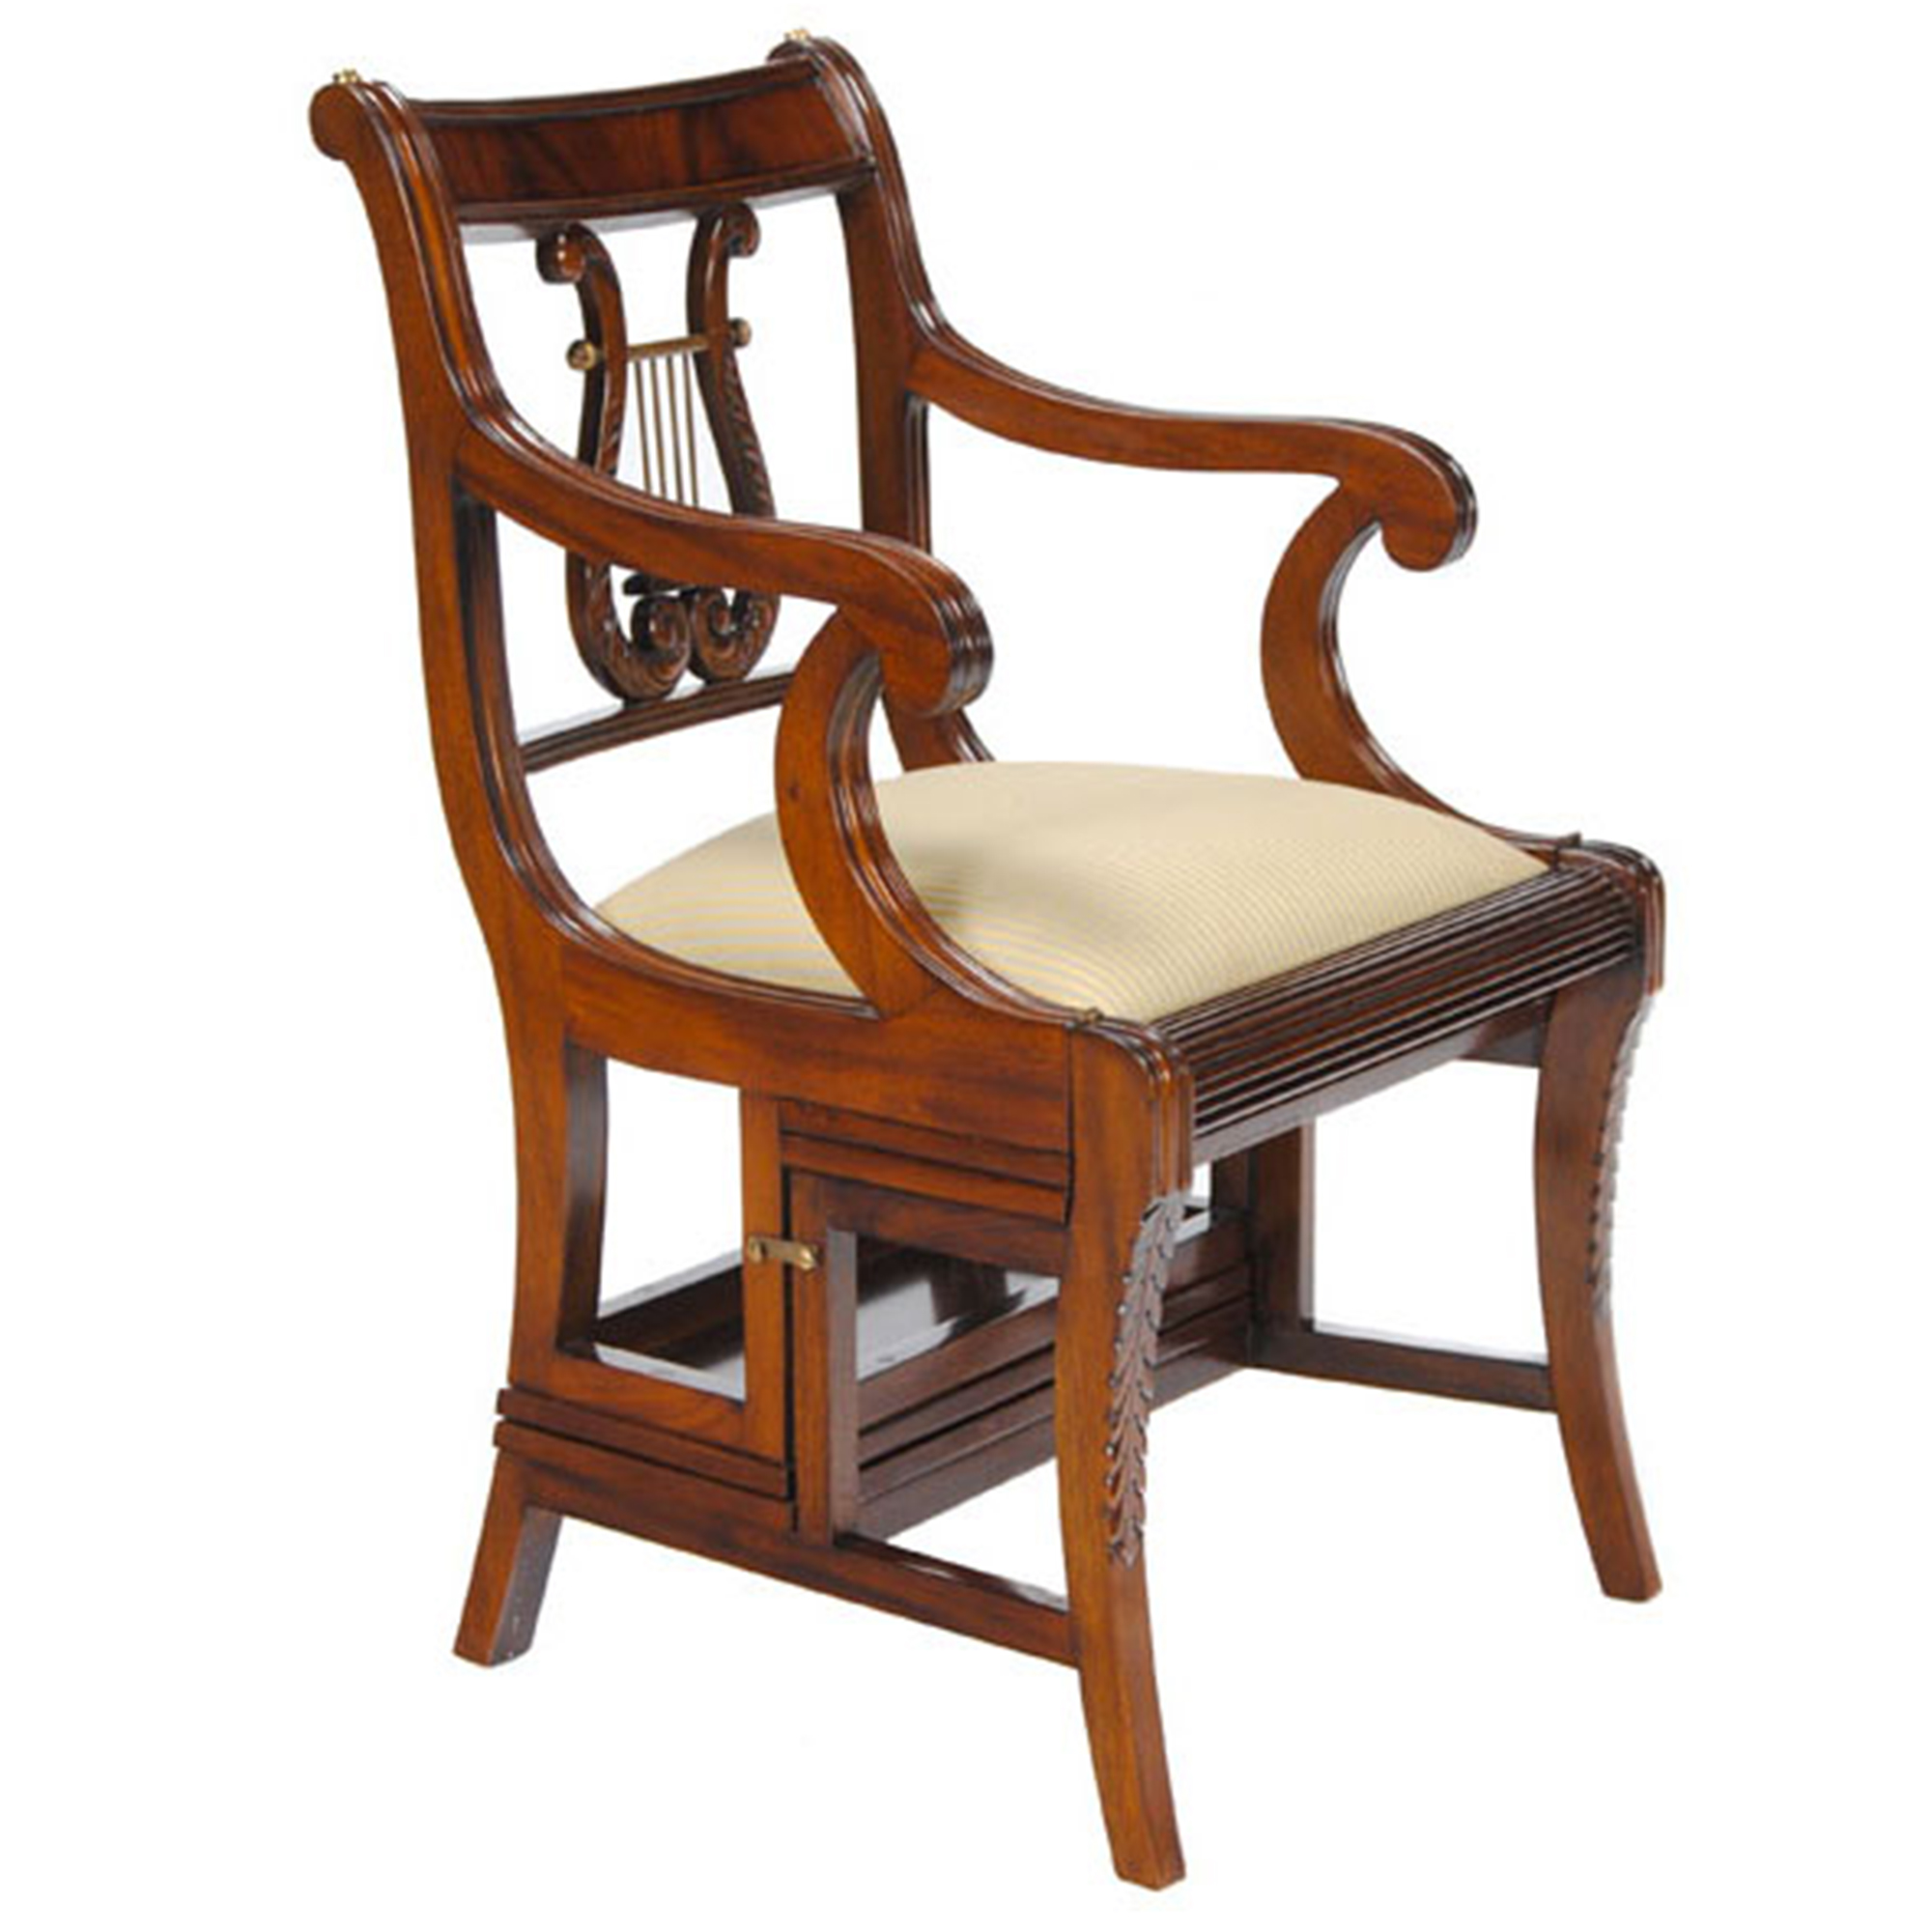 for hollow near depot vebsajt leather hours home arts rent sleepy me sunday chair library related oak post crafts homes